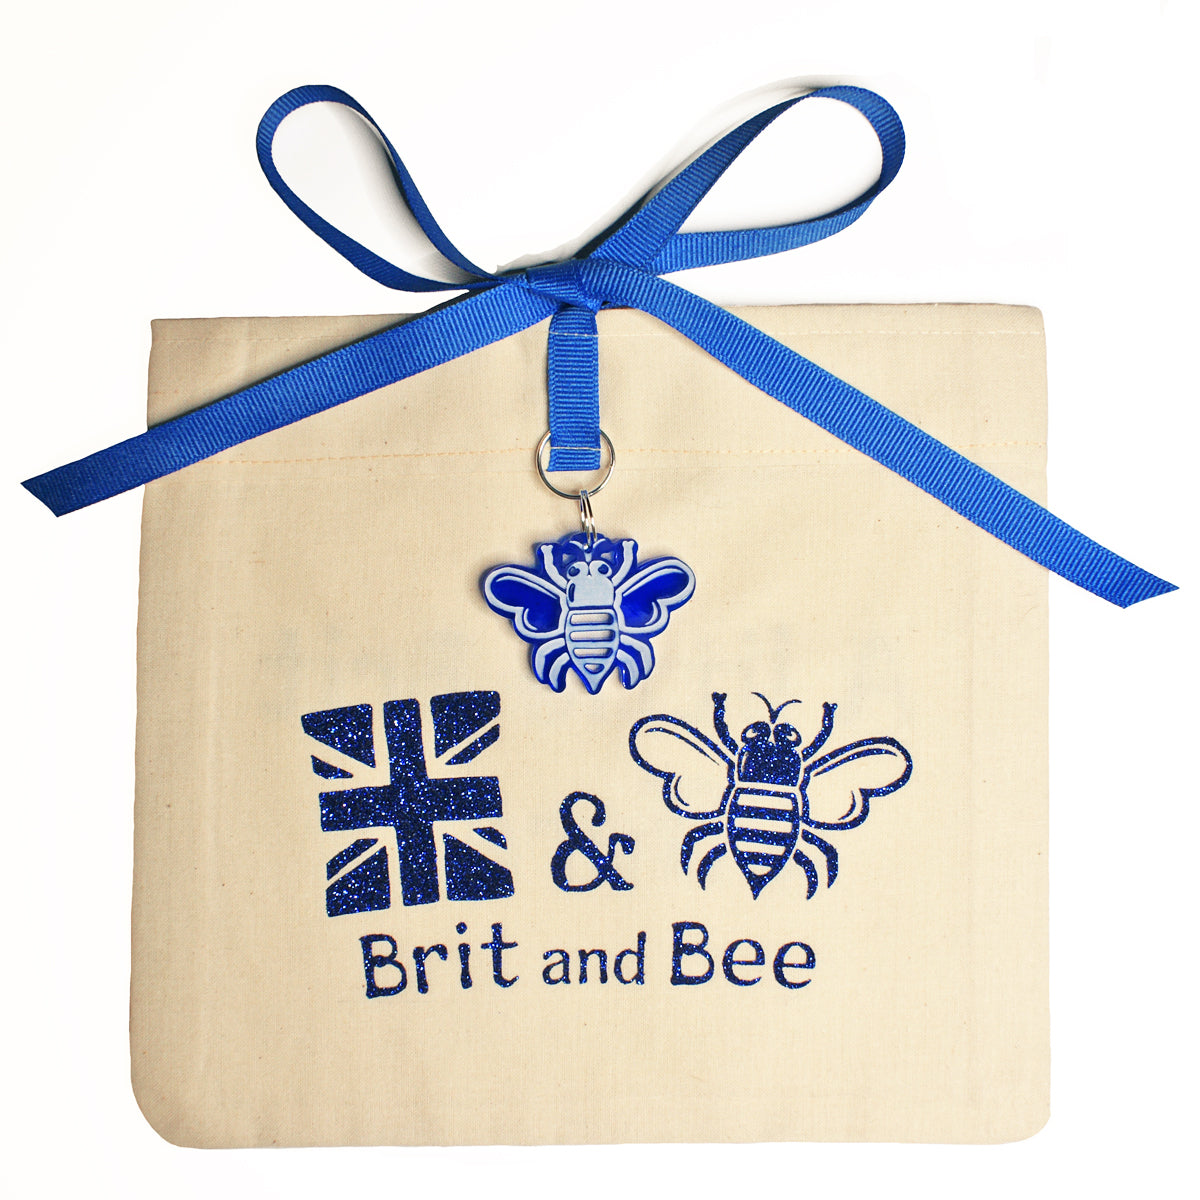 Brit and Bee Sorority Ribbon Year Decal - Delta Delta Delta